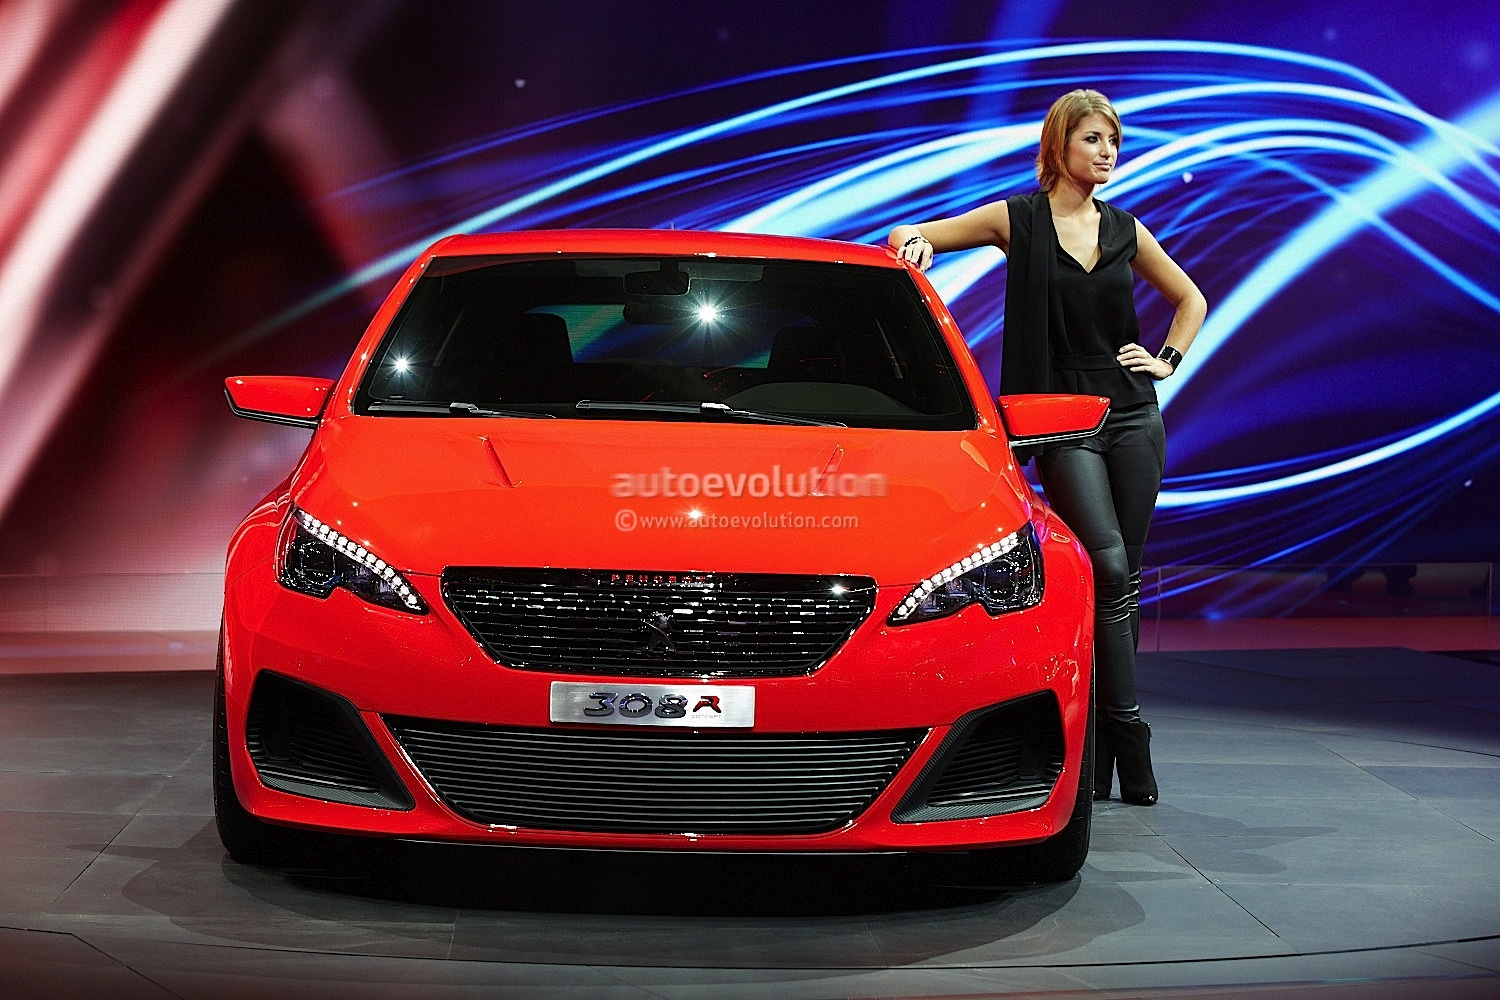 frankfurt 2013 peugeot 308 r concept live photos autoevolution. Black Bedroom Furniture Sets. Home Design Ideas